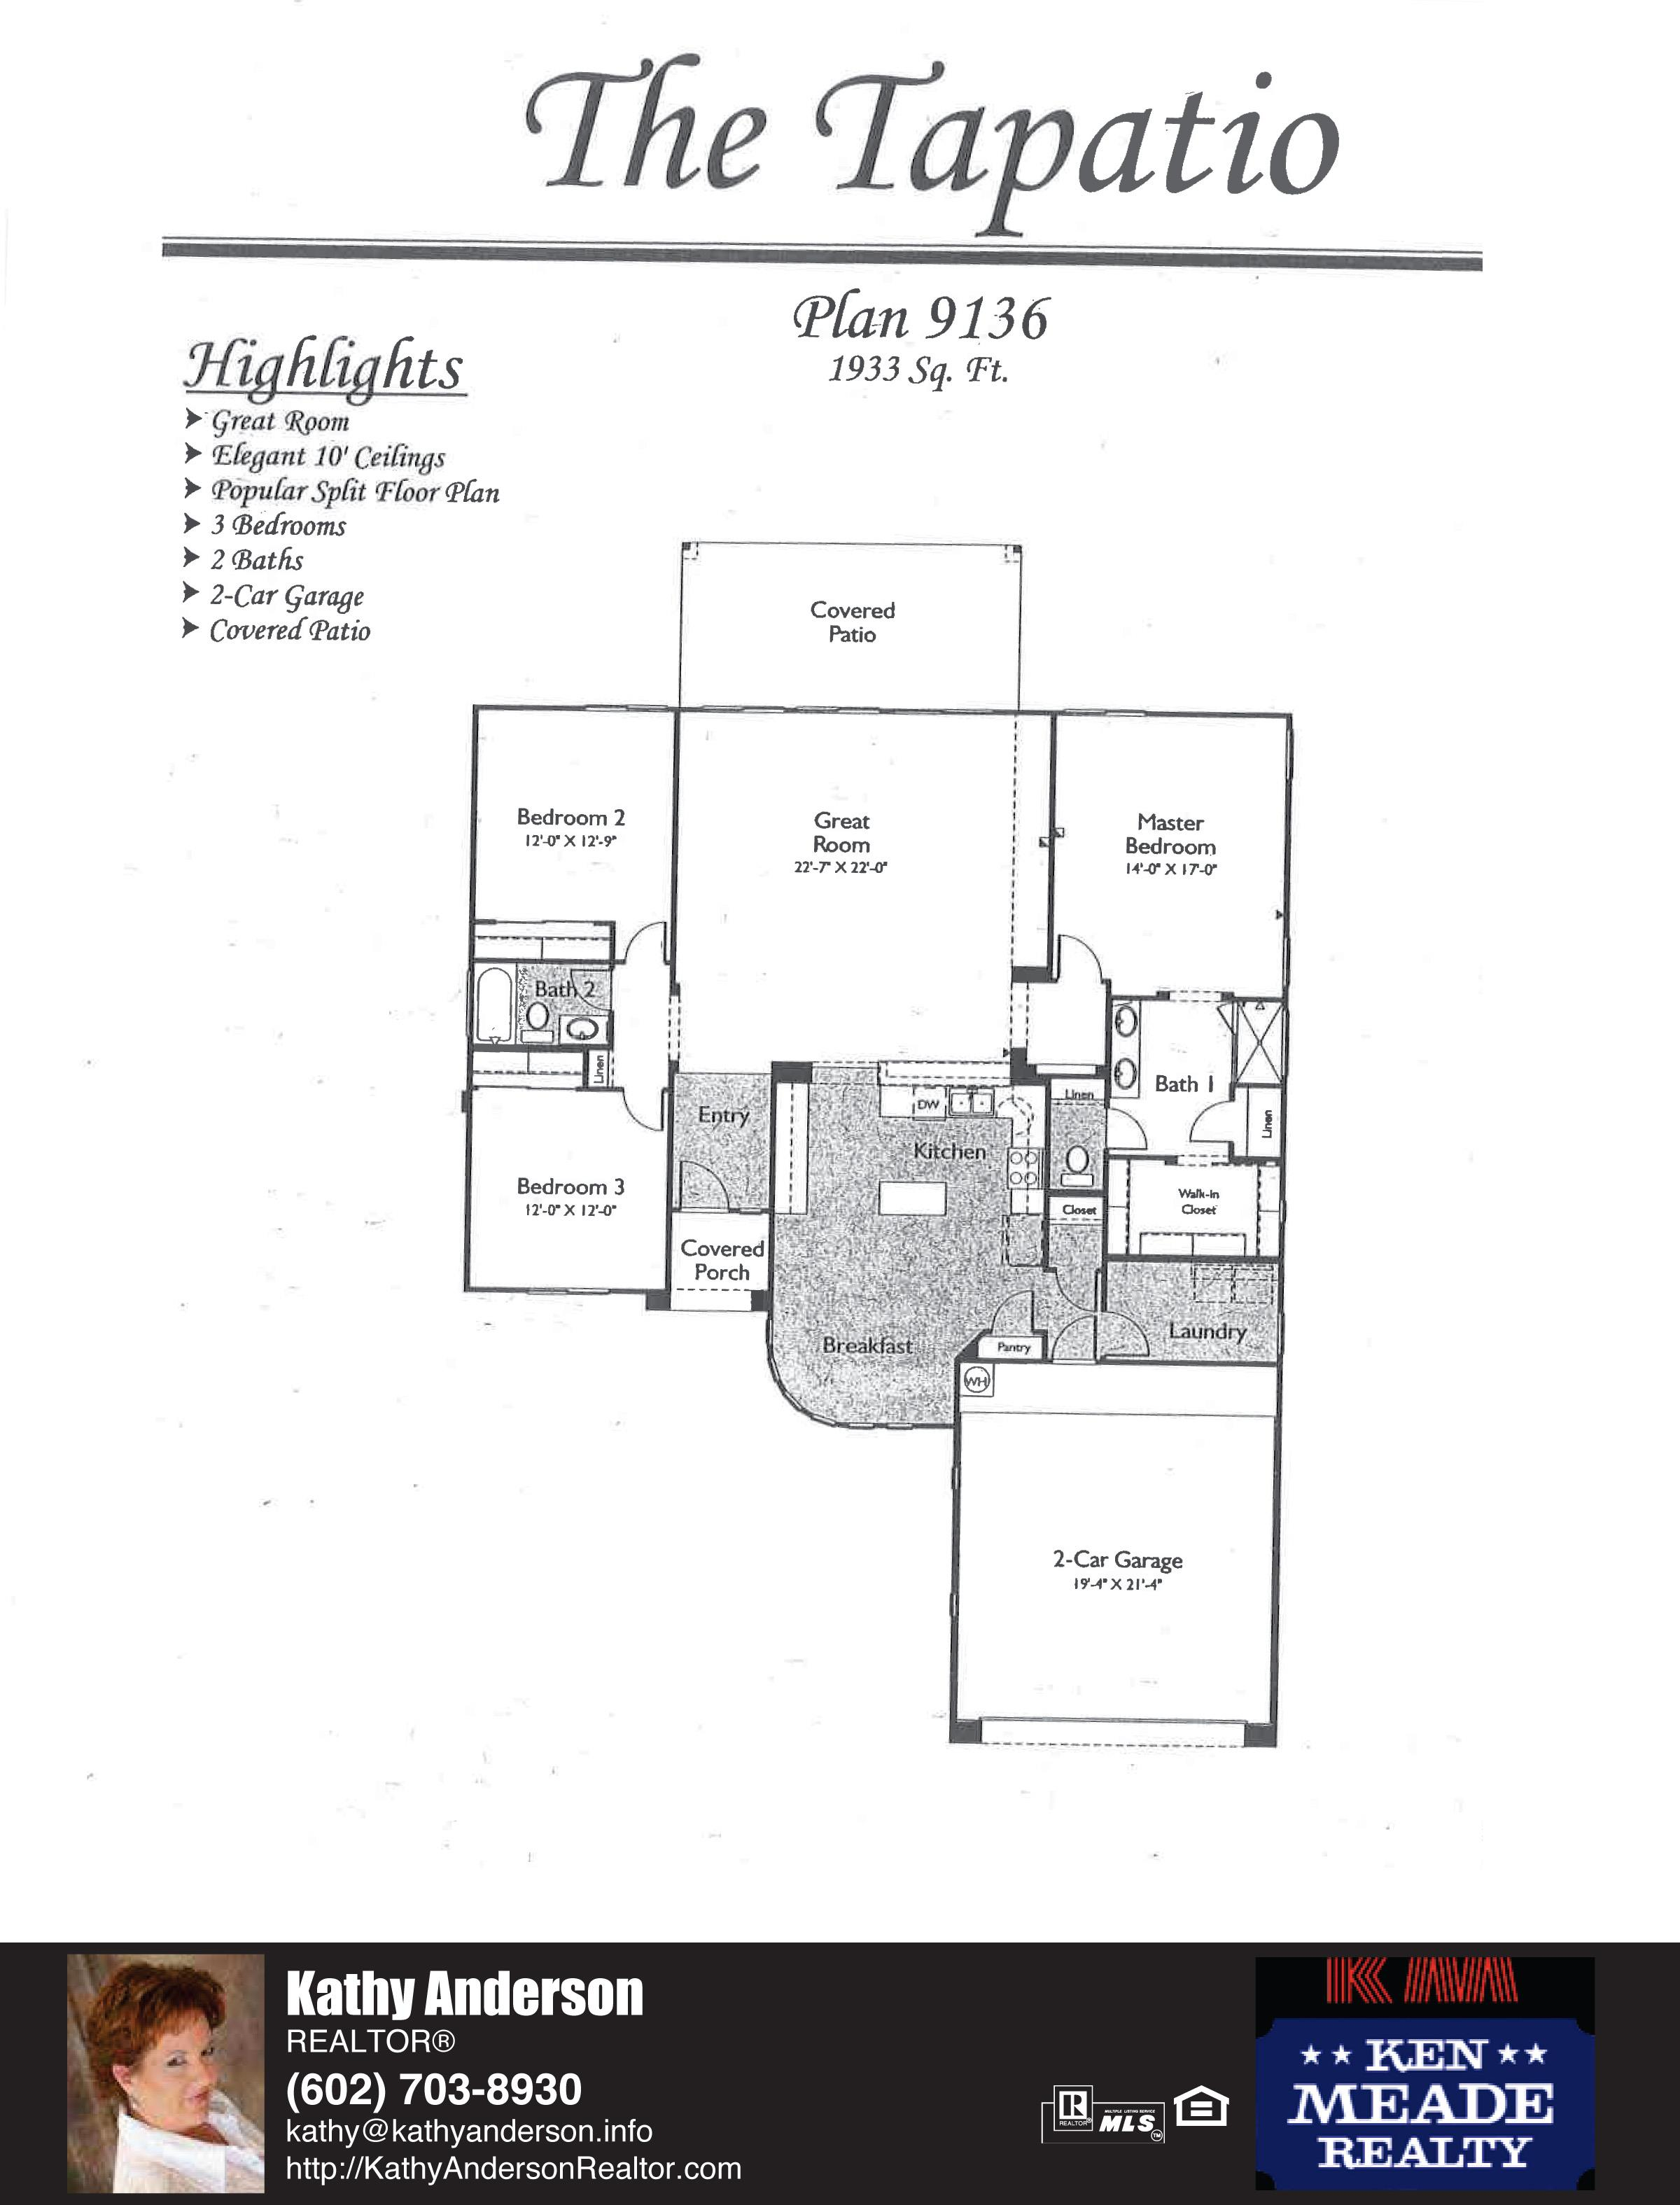 Arizona Traditions Tapatio Floor Plan Model Home Plans Floorplans Models in Surprise Arizona AZ Top Ken Meade Realty Realtor agent Kathy Anderson